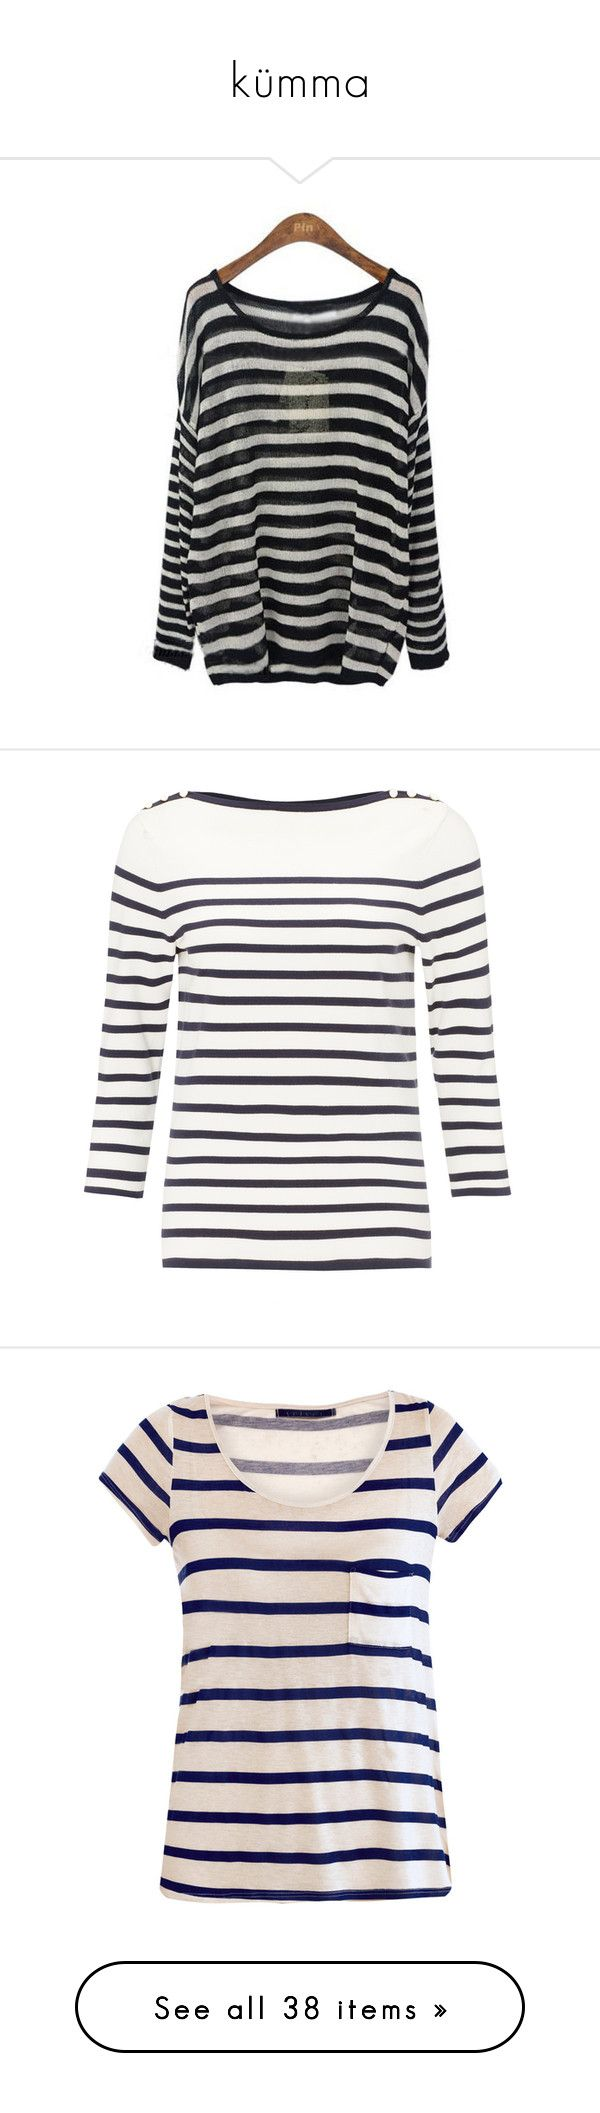 """kümma"" by merilin737 ❤ liked on Polyvore featuring tops, sweaters, shirts, black and white striped sweater, black and white striped top, striped shirt, black and white sweater, black and white shirt, blusas and haut"